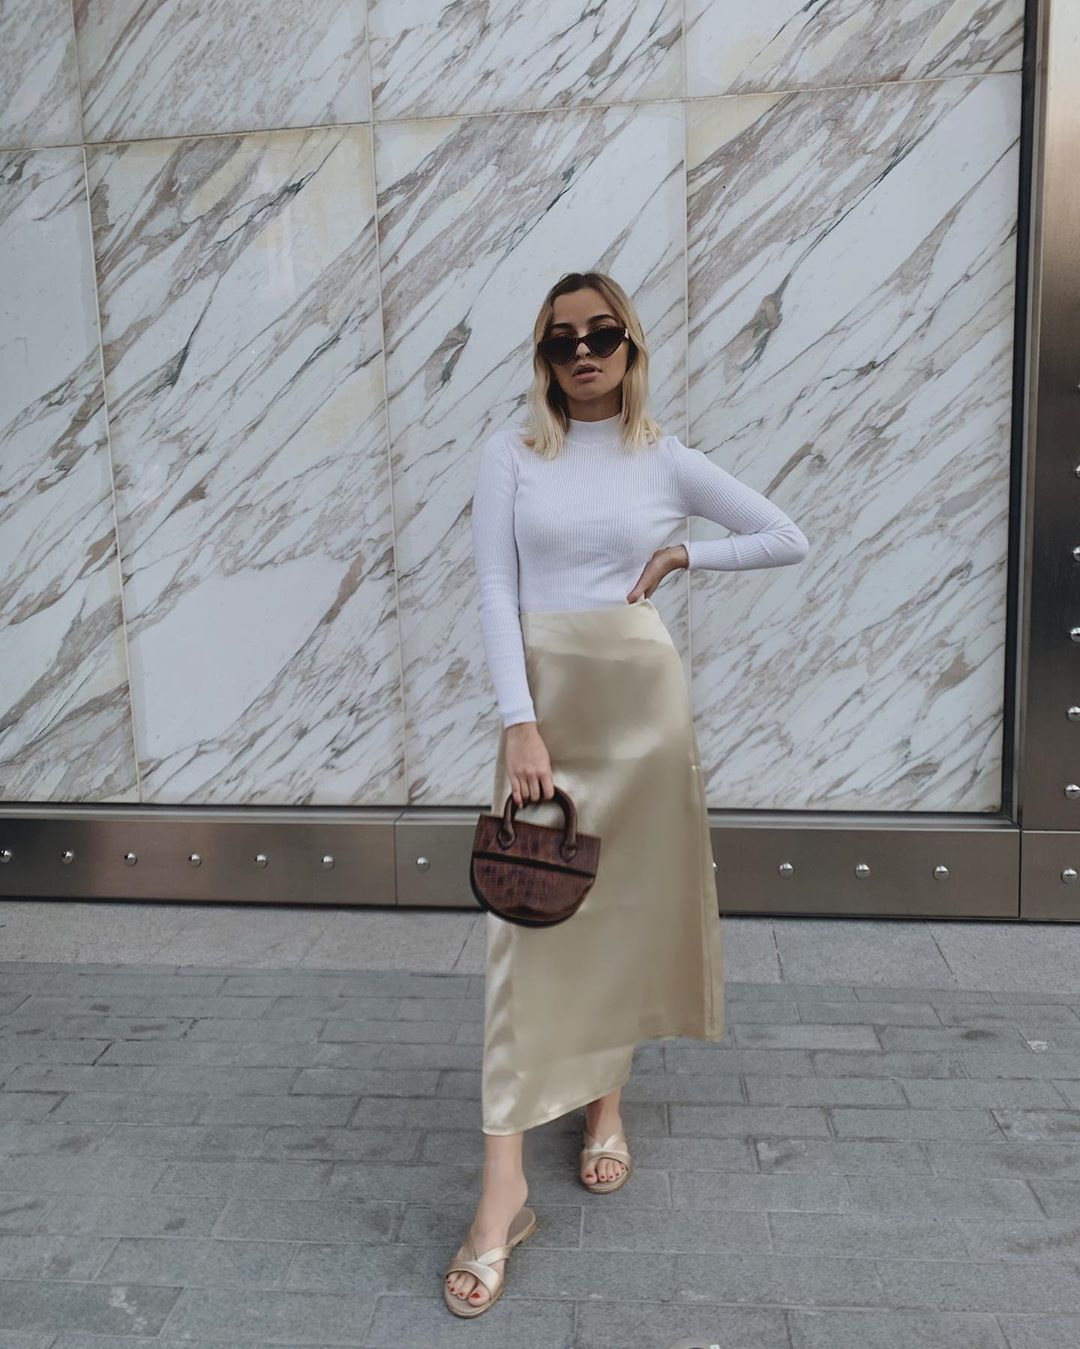 A woman in a white turtleneck and satin skirt holding a burgundy croc exterior semi-circle handbag.